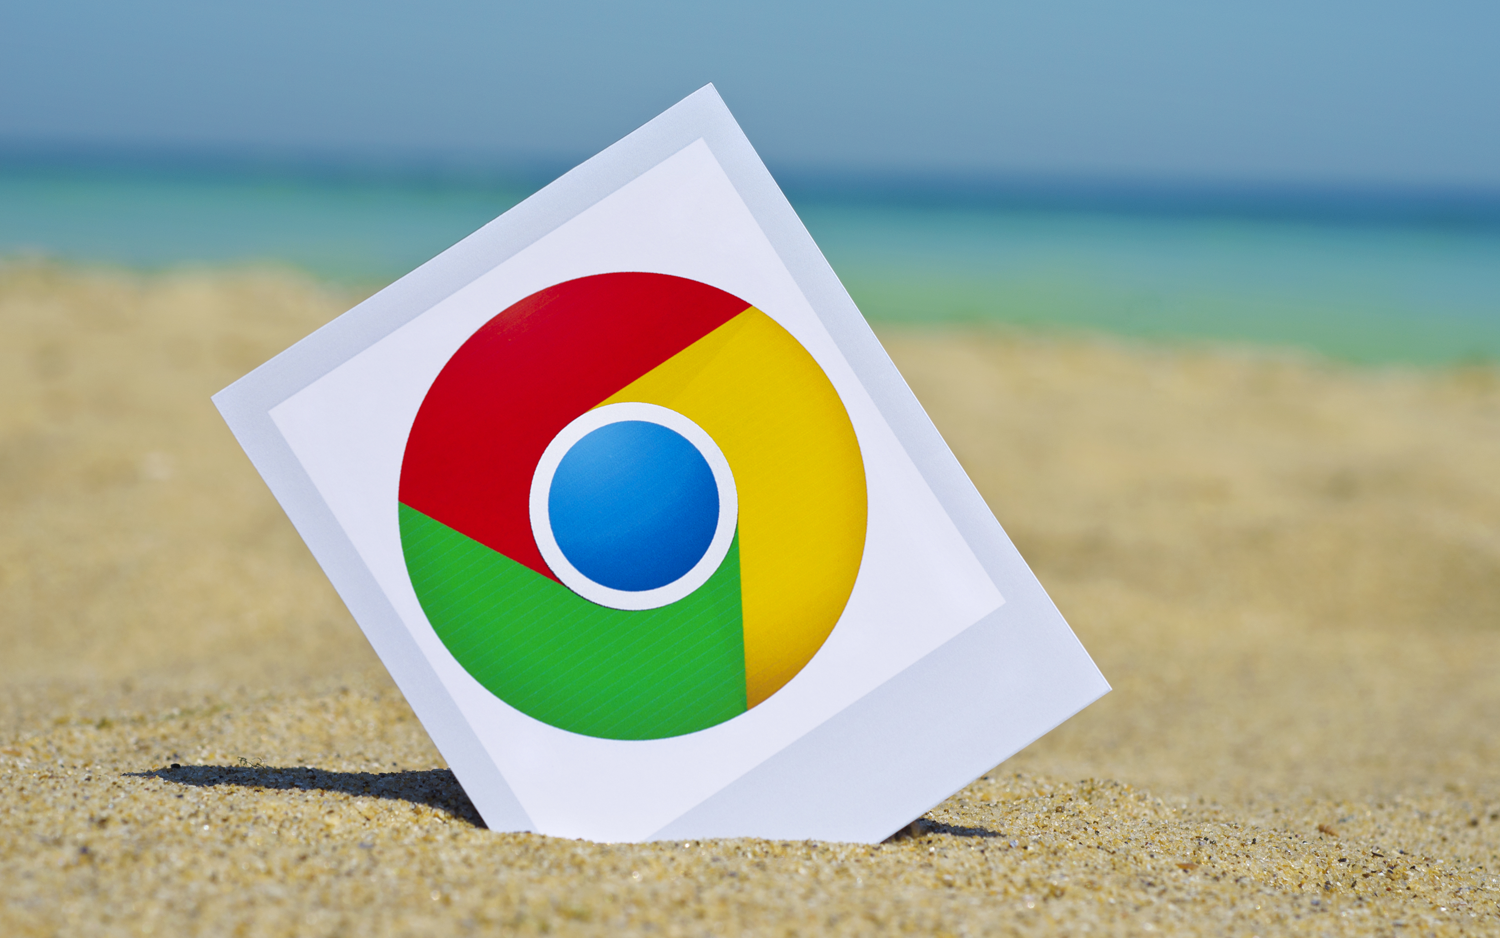 New Chrome 67 Out Now: Password-Free Logins and More | Tom's Guide